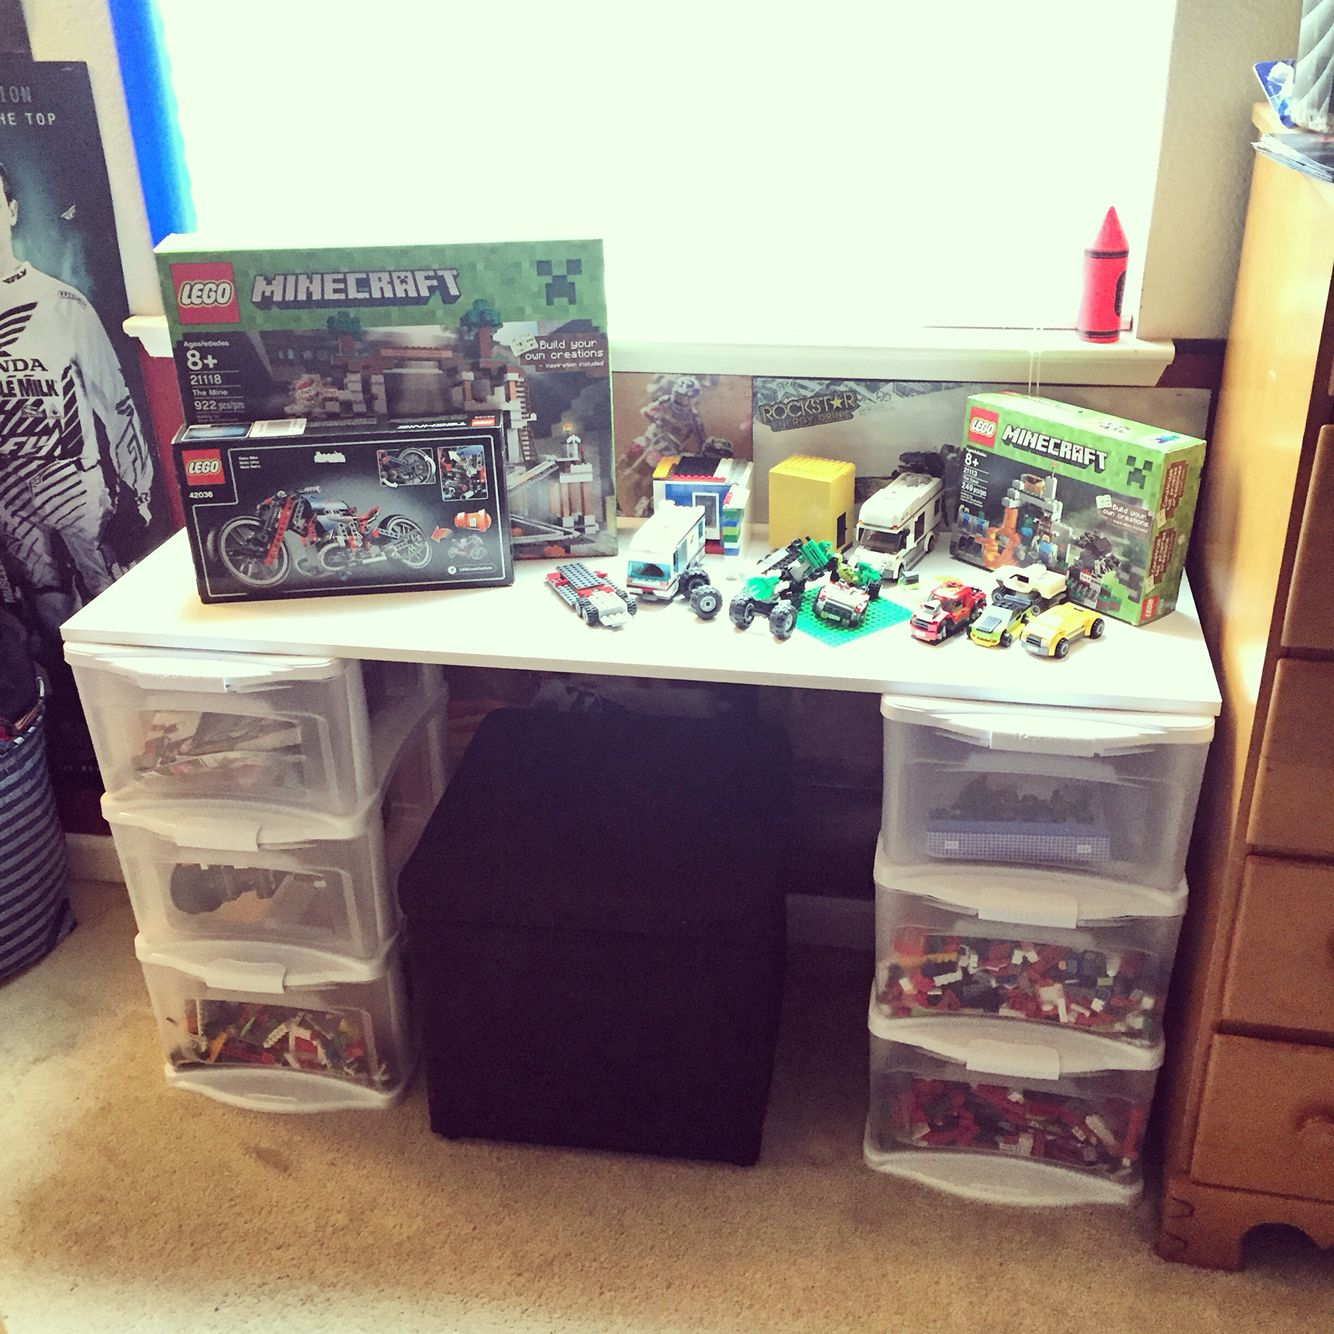 Lego Desk Table Diy Cost About 40 All You Need Is 2 Plastic Storage Drawer Bins And A Laminate